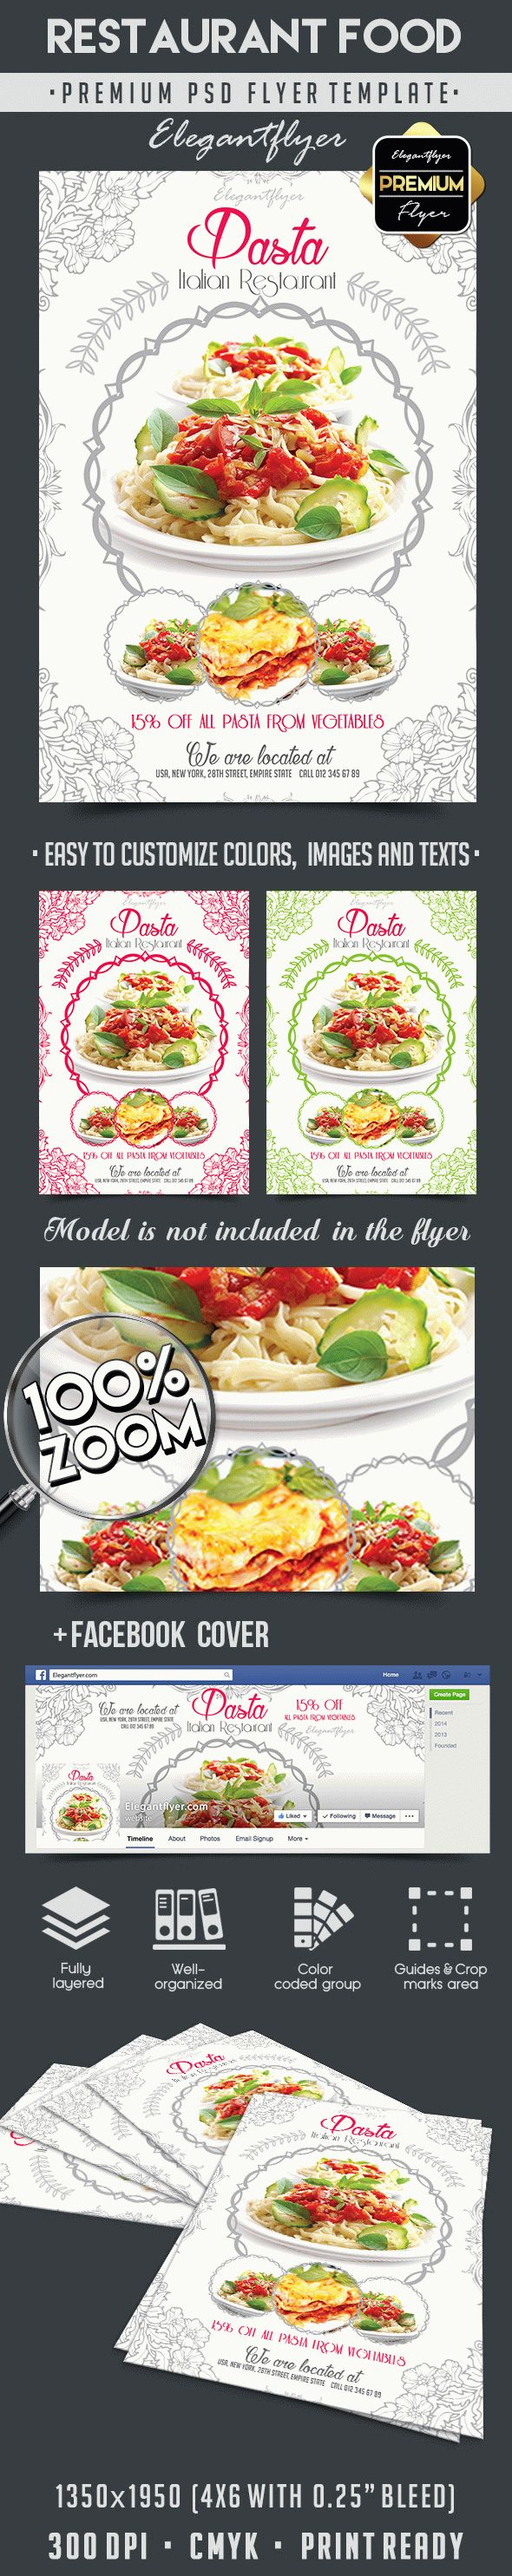 Restaurant Food – Flyer PSD Template + Facebook Cover